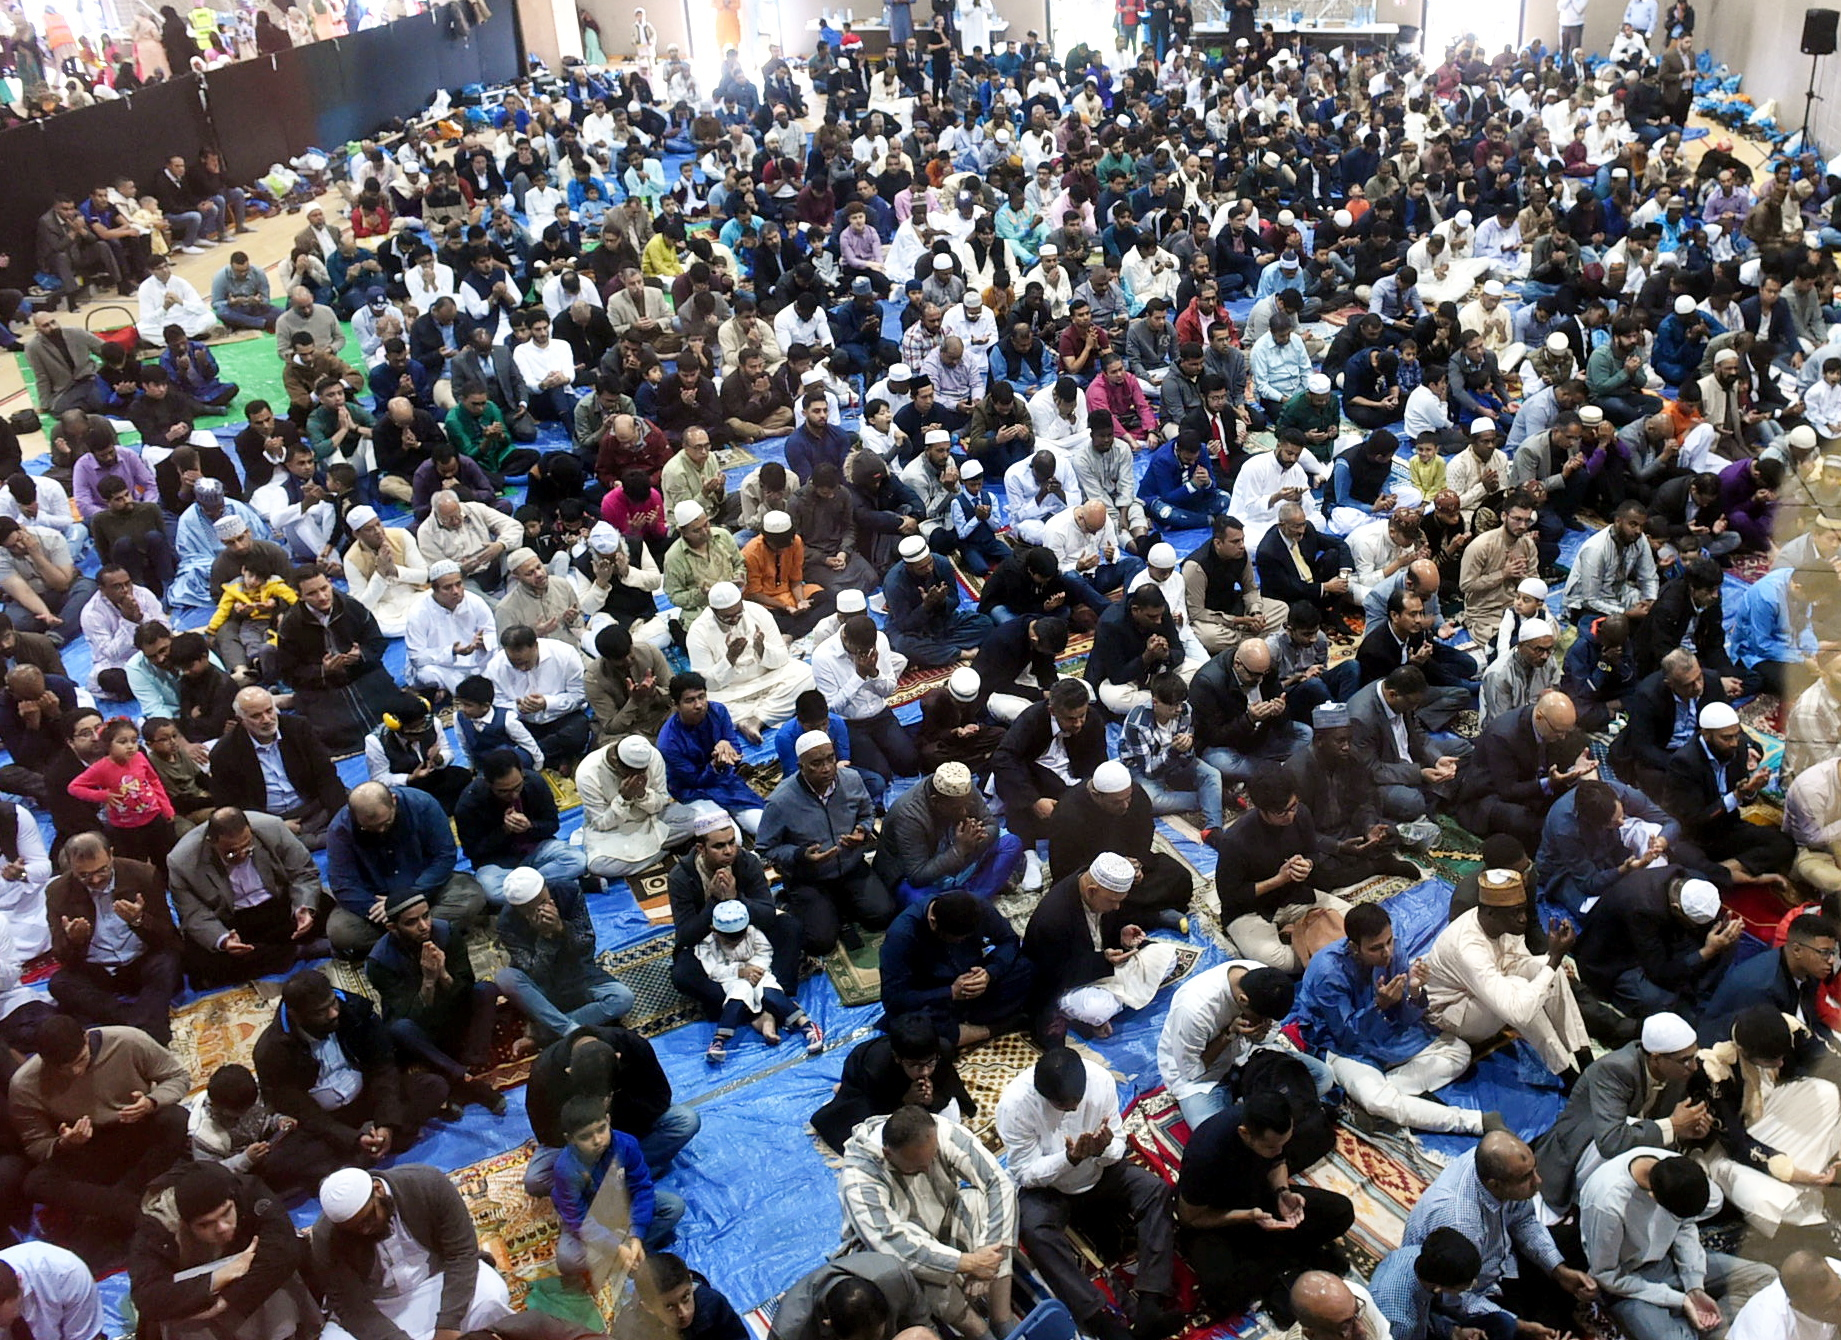 The Aberdeen Mosque and Islamic centre, celebrate the Eid in the Garden at Aberdeen Leisure centre, Aberdeen. In the picture they are at prayer.  Picture by Jim Irvine.